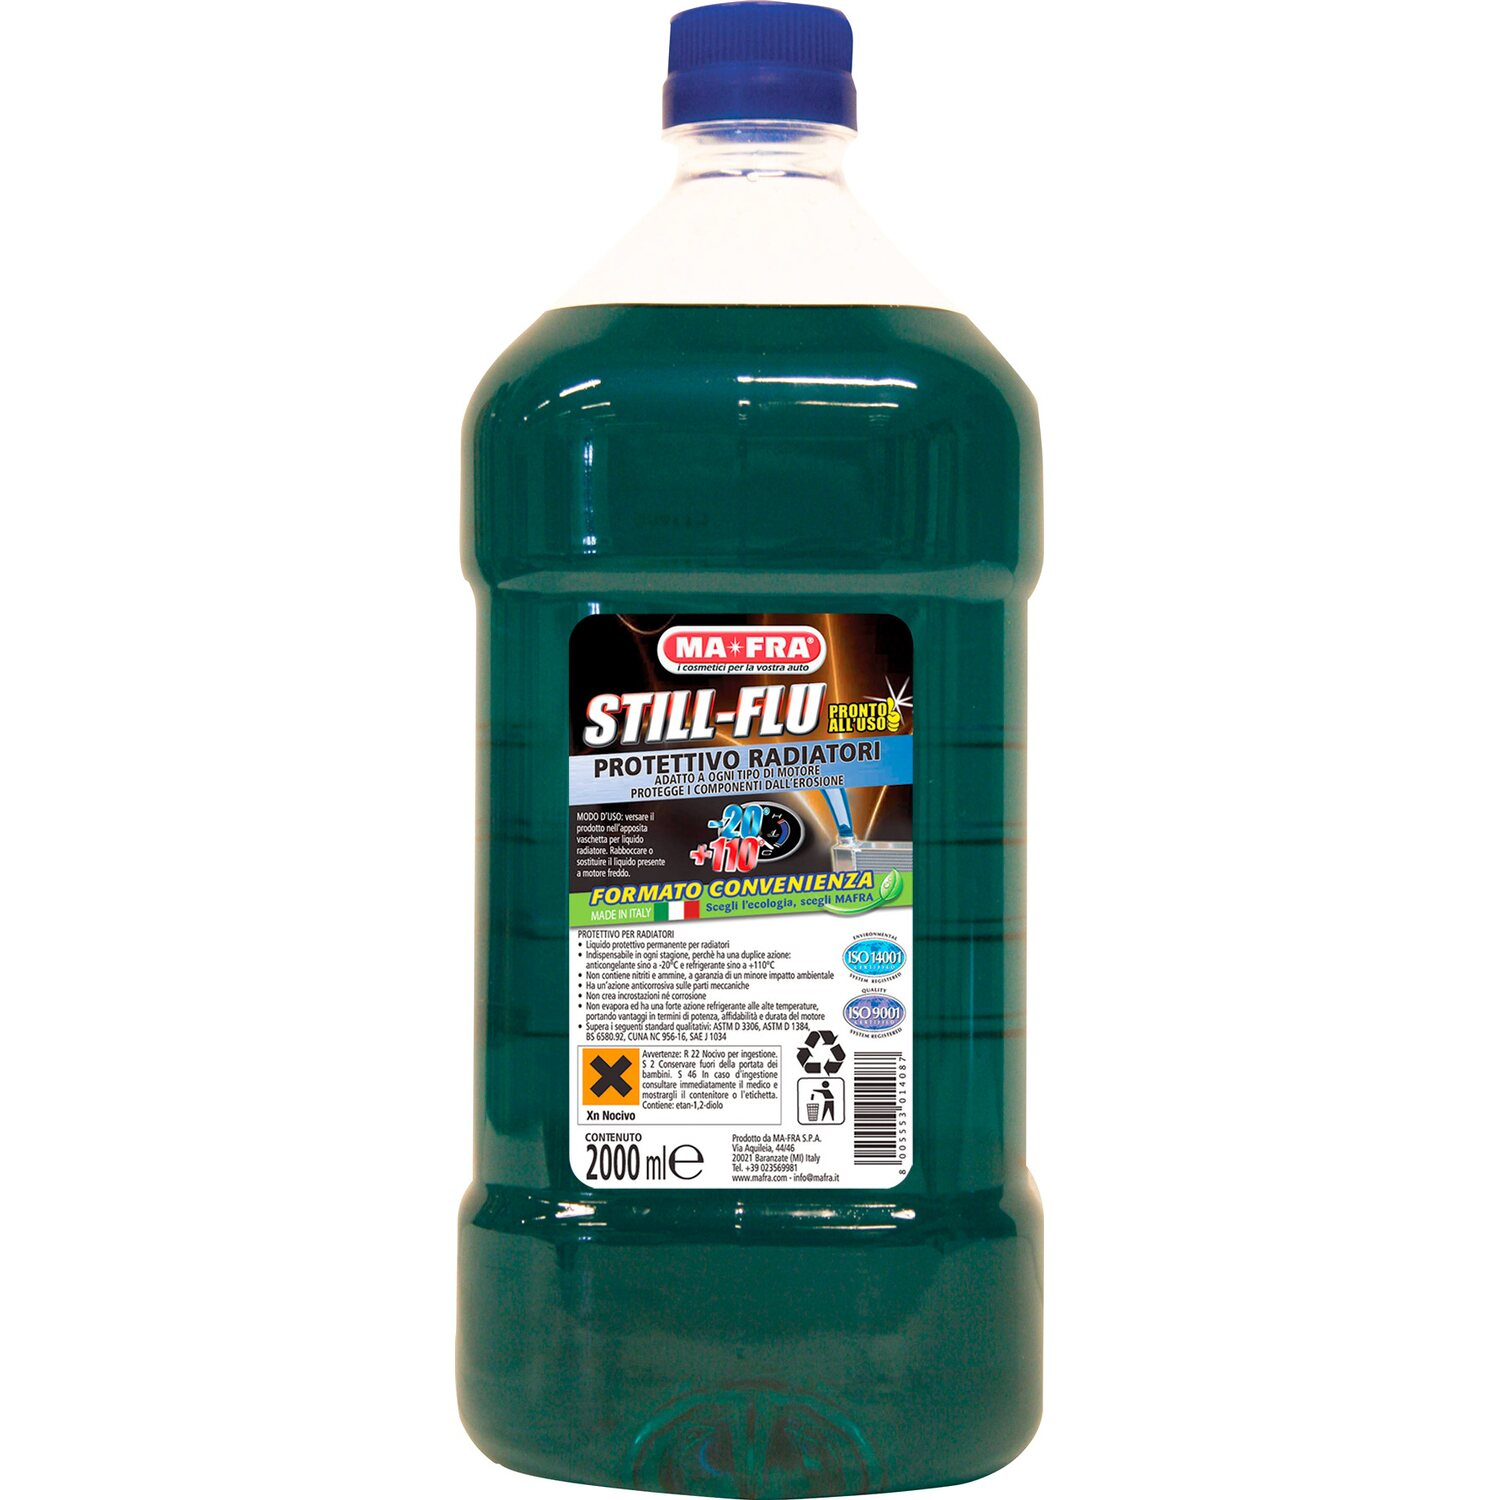 Ma fra still flu liquido per radiatori acquista da obi for Obi stufe a combustibile liquido